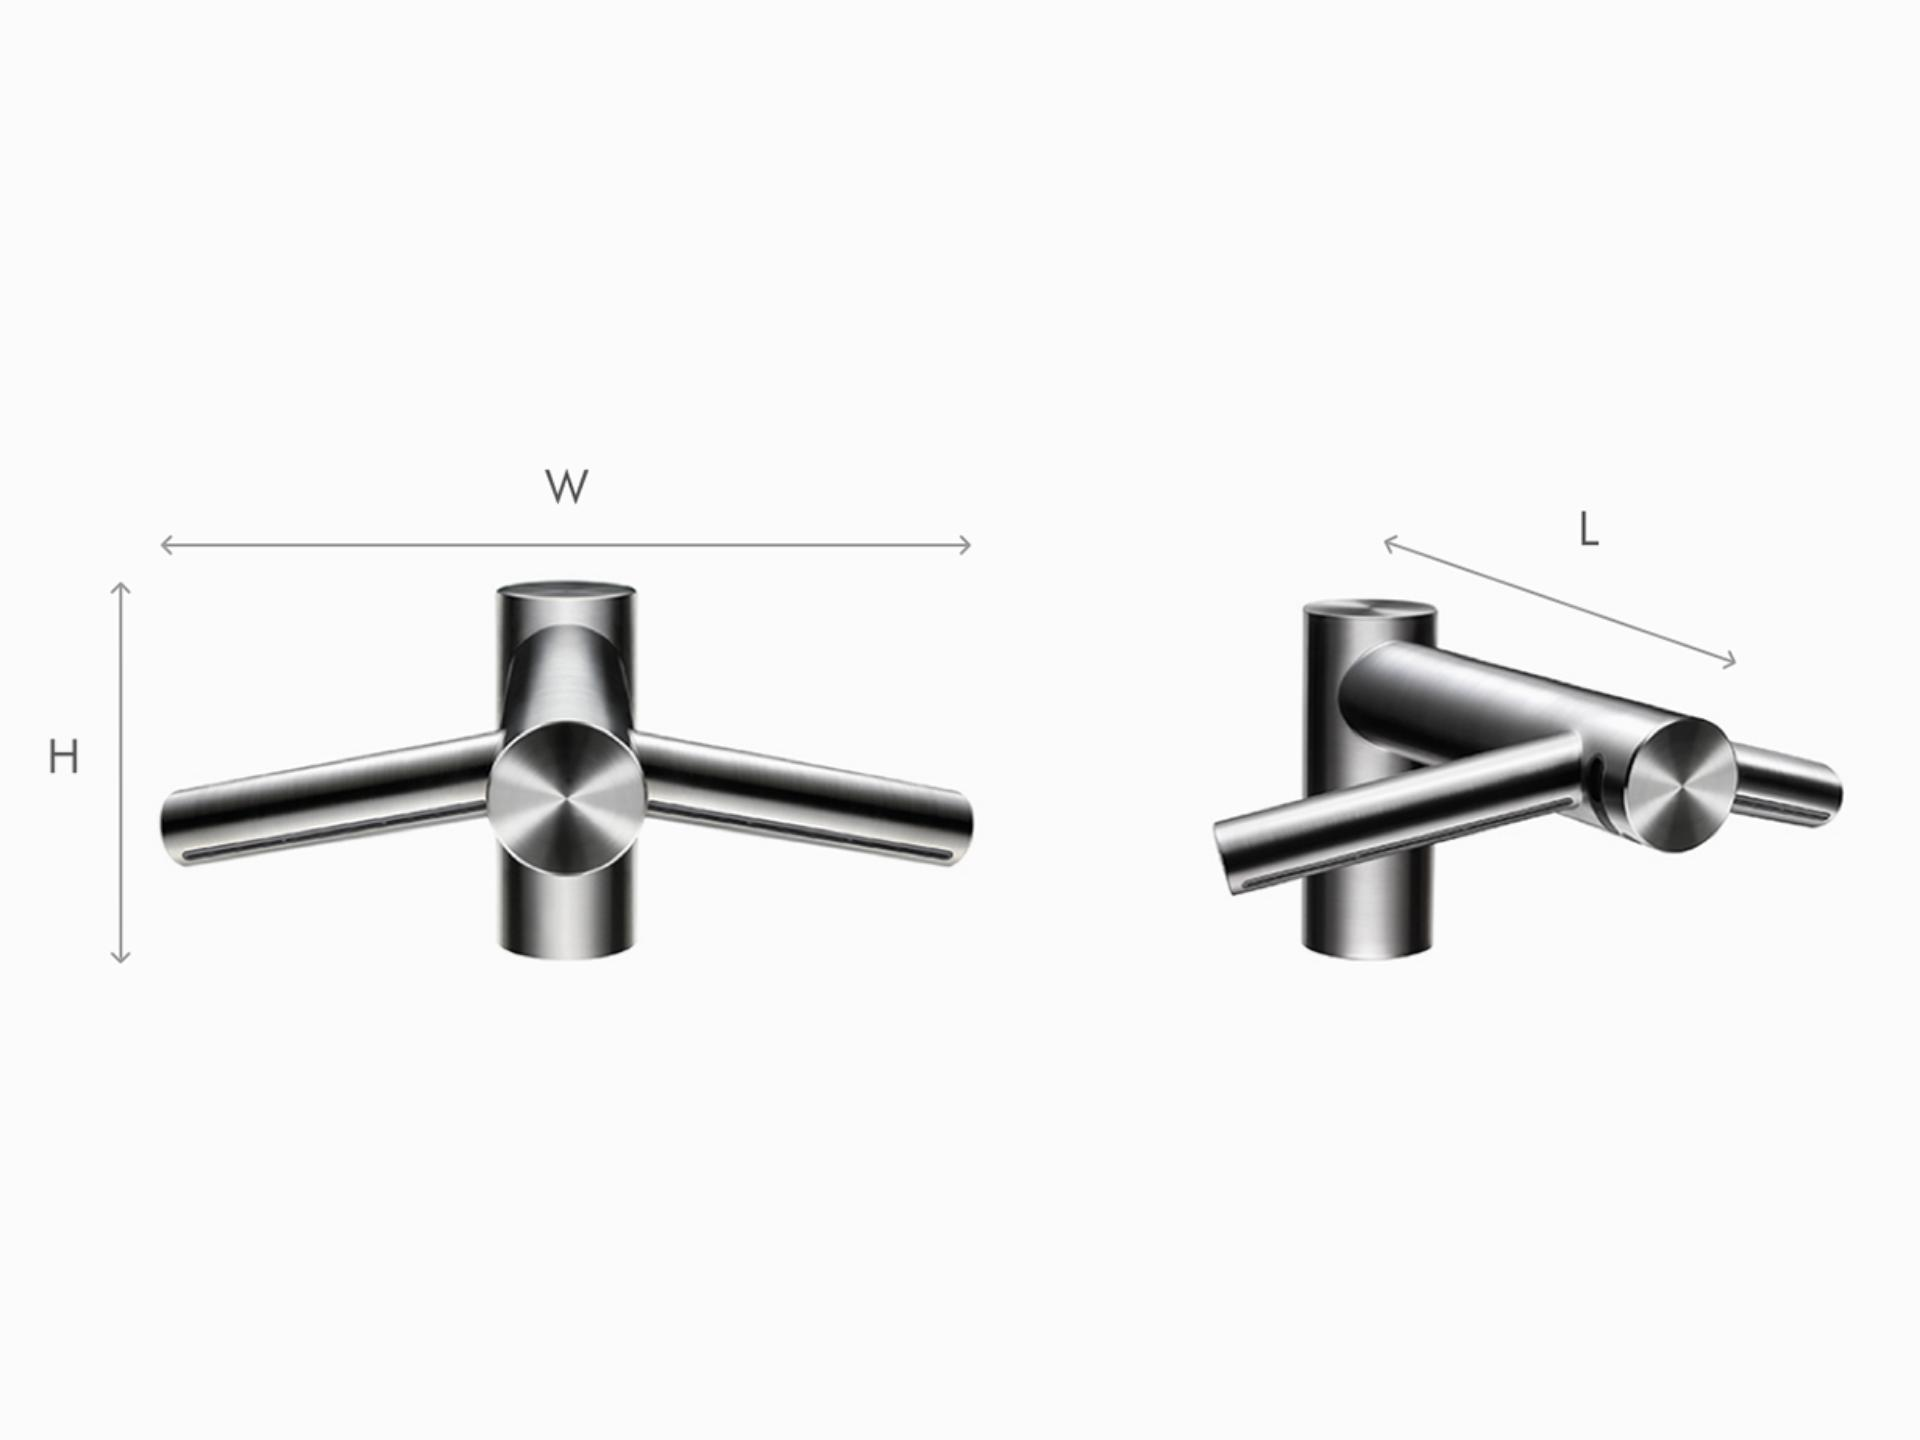 Illustration of Dyson Airblade Wash+Dry short hand dryer dimensions